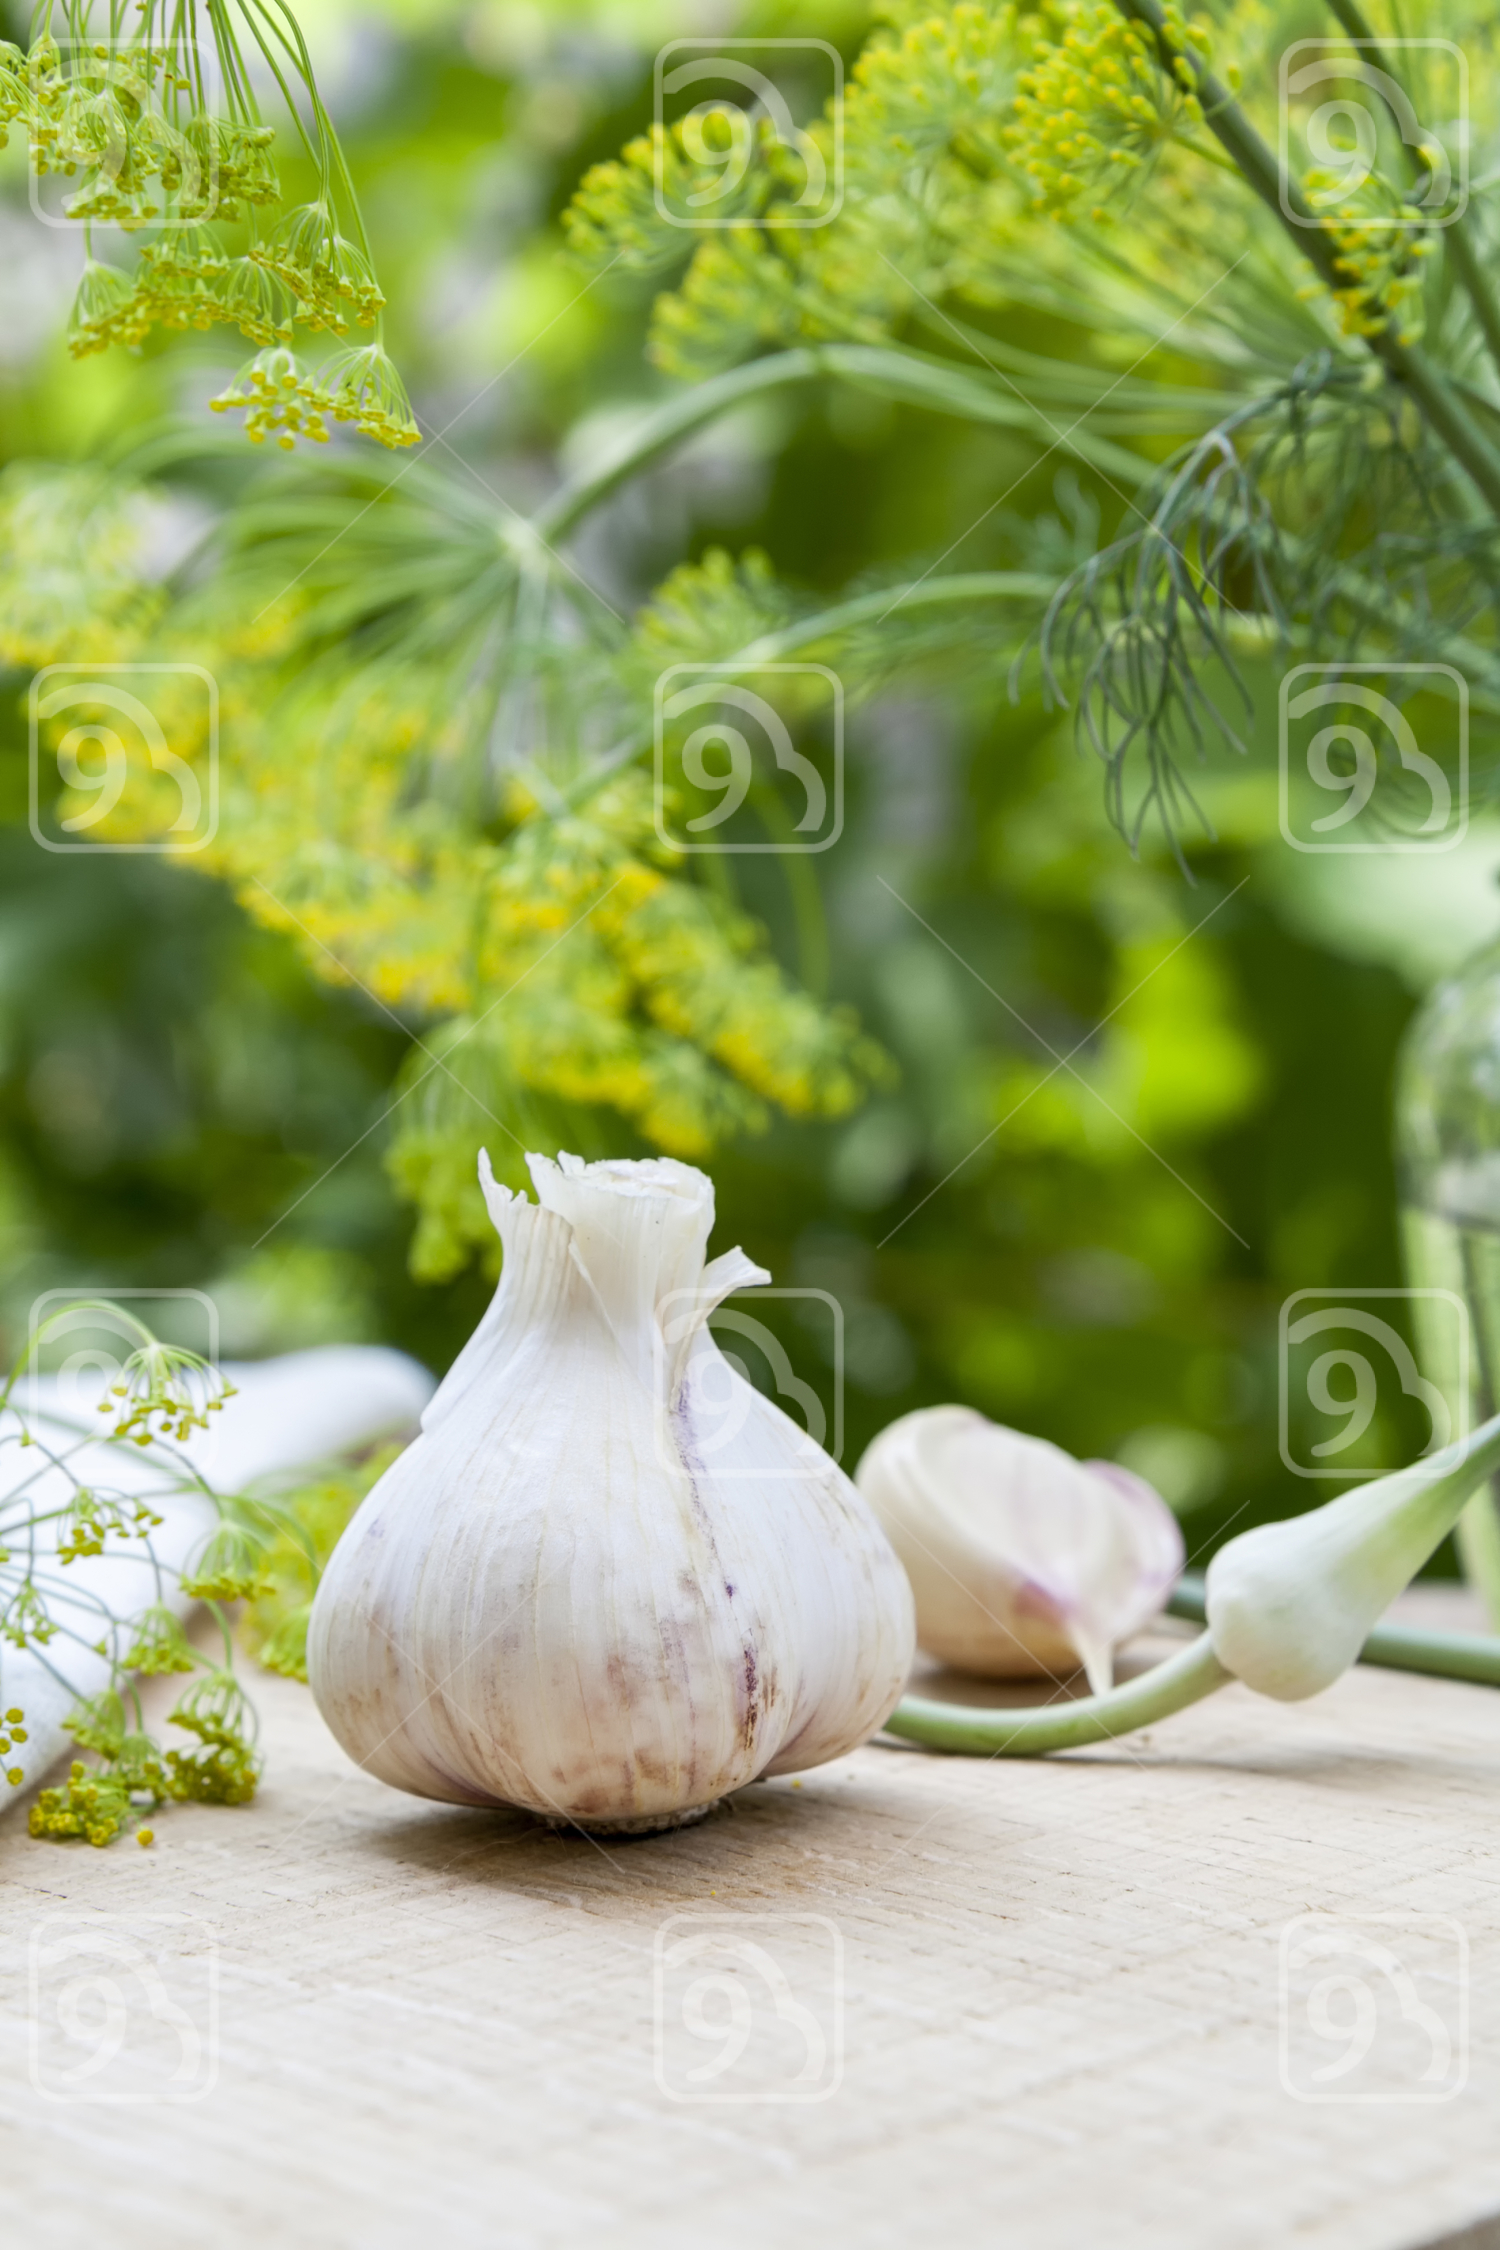 Fresh garlic and dill on a wooden table